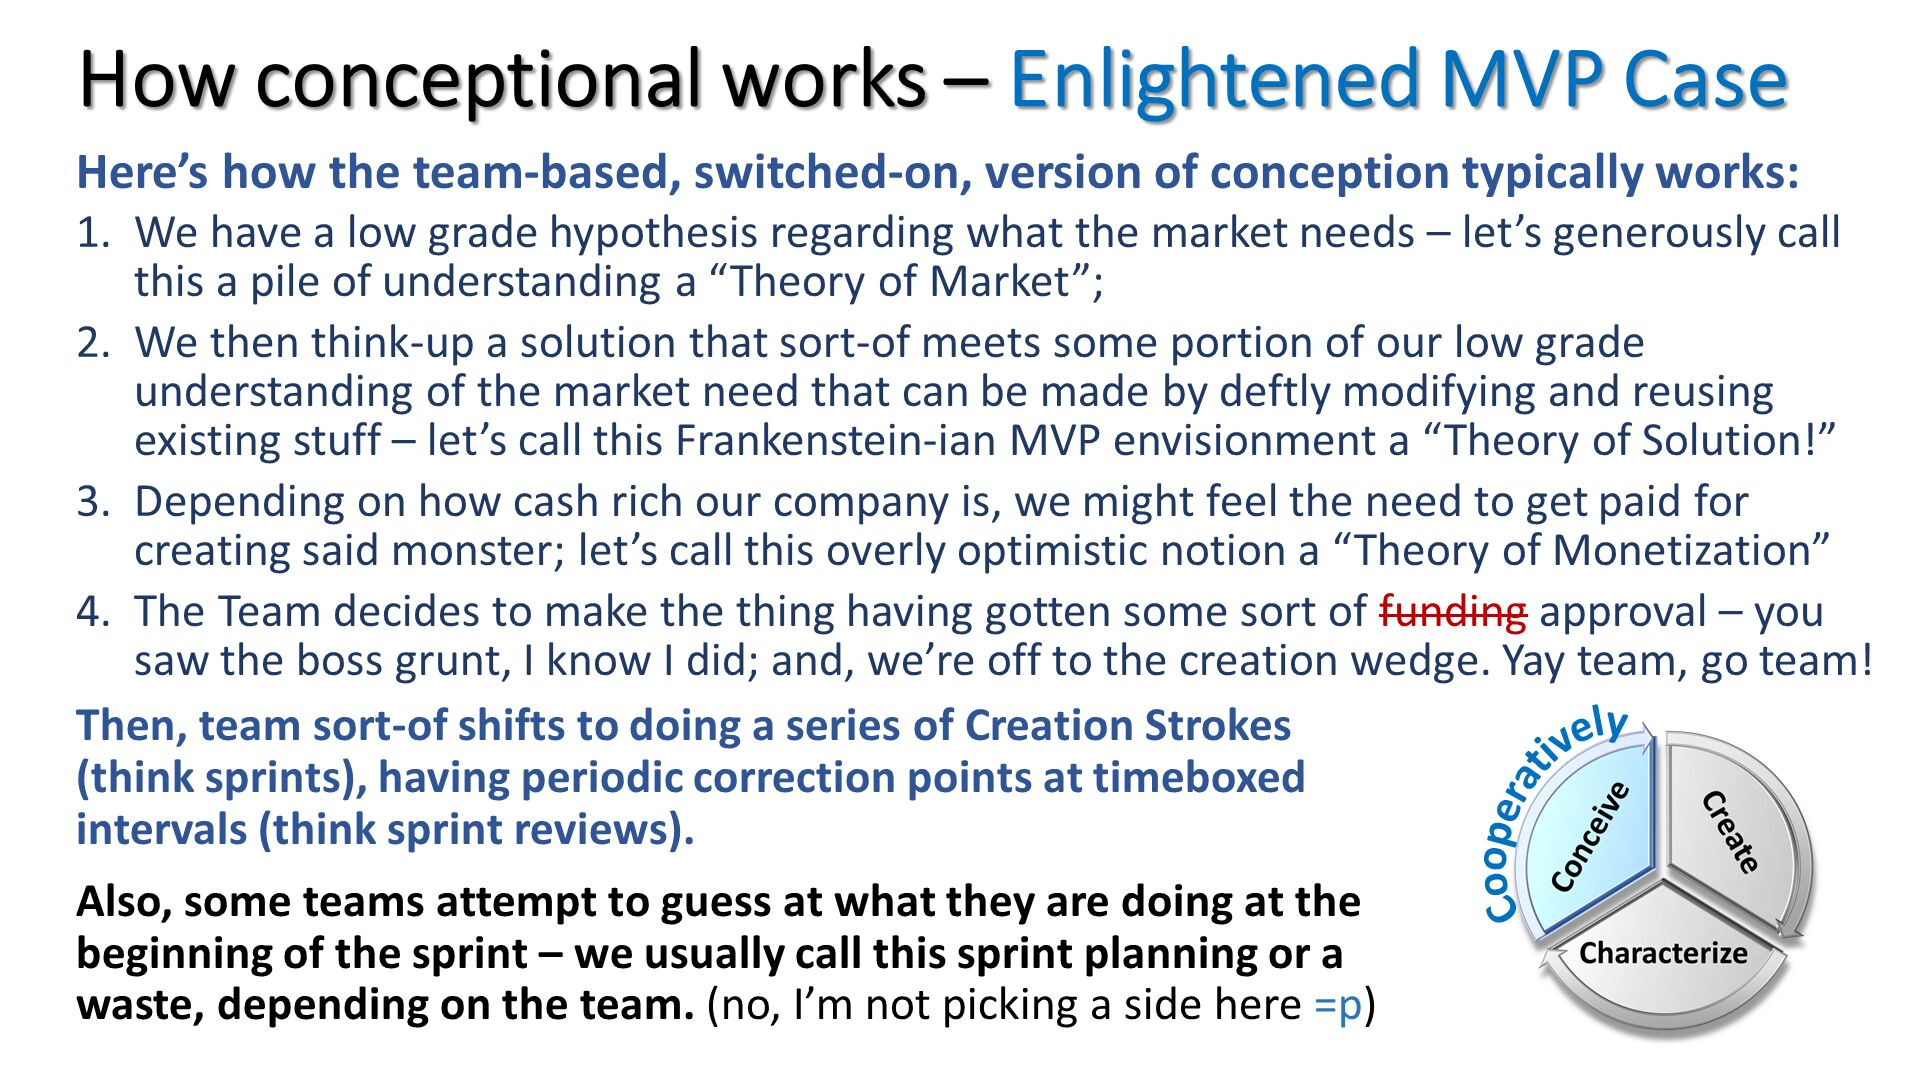 "How conceptional works – Enlightened MVP Case. Here's how the team-based, switched-on, version of conception typically works:  We have a low grade hypothesis regarding what the market needs – let's generously call this a pile of understanding a ""Theory of Market""; We then think-up a solution that sort-of meets some portion of our low grade understanding of the market need that can be made by deftly modifying and reusing existing stuff – let's call this Frankenstein-ian MVP envisionment a ""Theory of Solution!"" Depending on how cash rich our company is, we might feel the need to get paid for creating said monster; let's call this overly optimistic notion a ""Theory of Monetization"" The Team decides to make the thing having gotten some sort of funding approval – you saw the boss grunt, I know I did; and, we're off to the creation wedge. Yay team, go team!. Then, team sort-of shifts to doing a series of Creation Strokes (think sprints), having periodic correction points at timeboxed intervals (think sprint reviews). Also, some teams attempt to guess at what they are doing at the beginning of the sprint – we usually call this sprint planning or a waste, depending on the team. (no, I'm not picking a side here =p)."